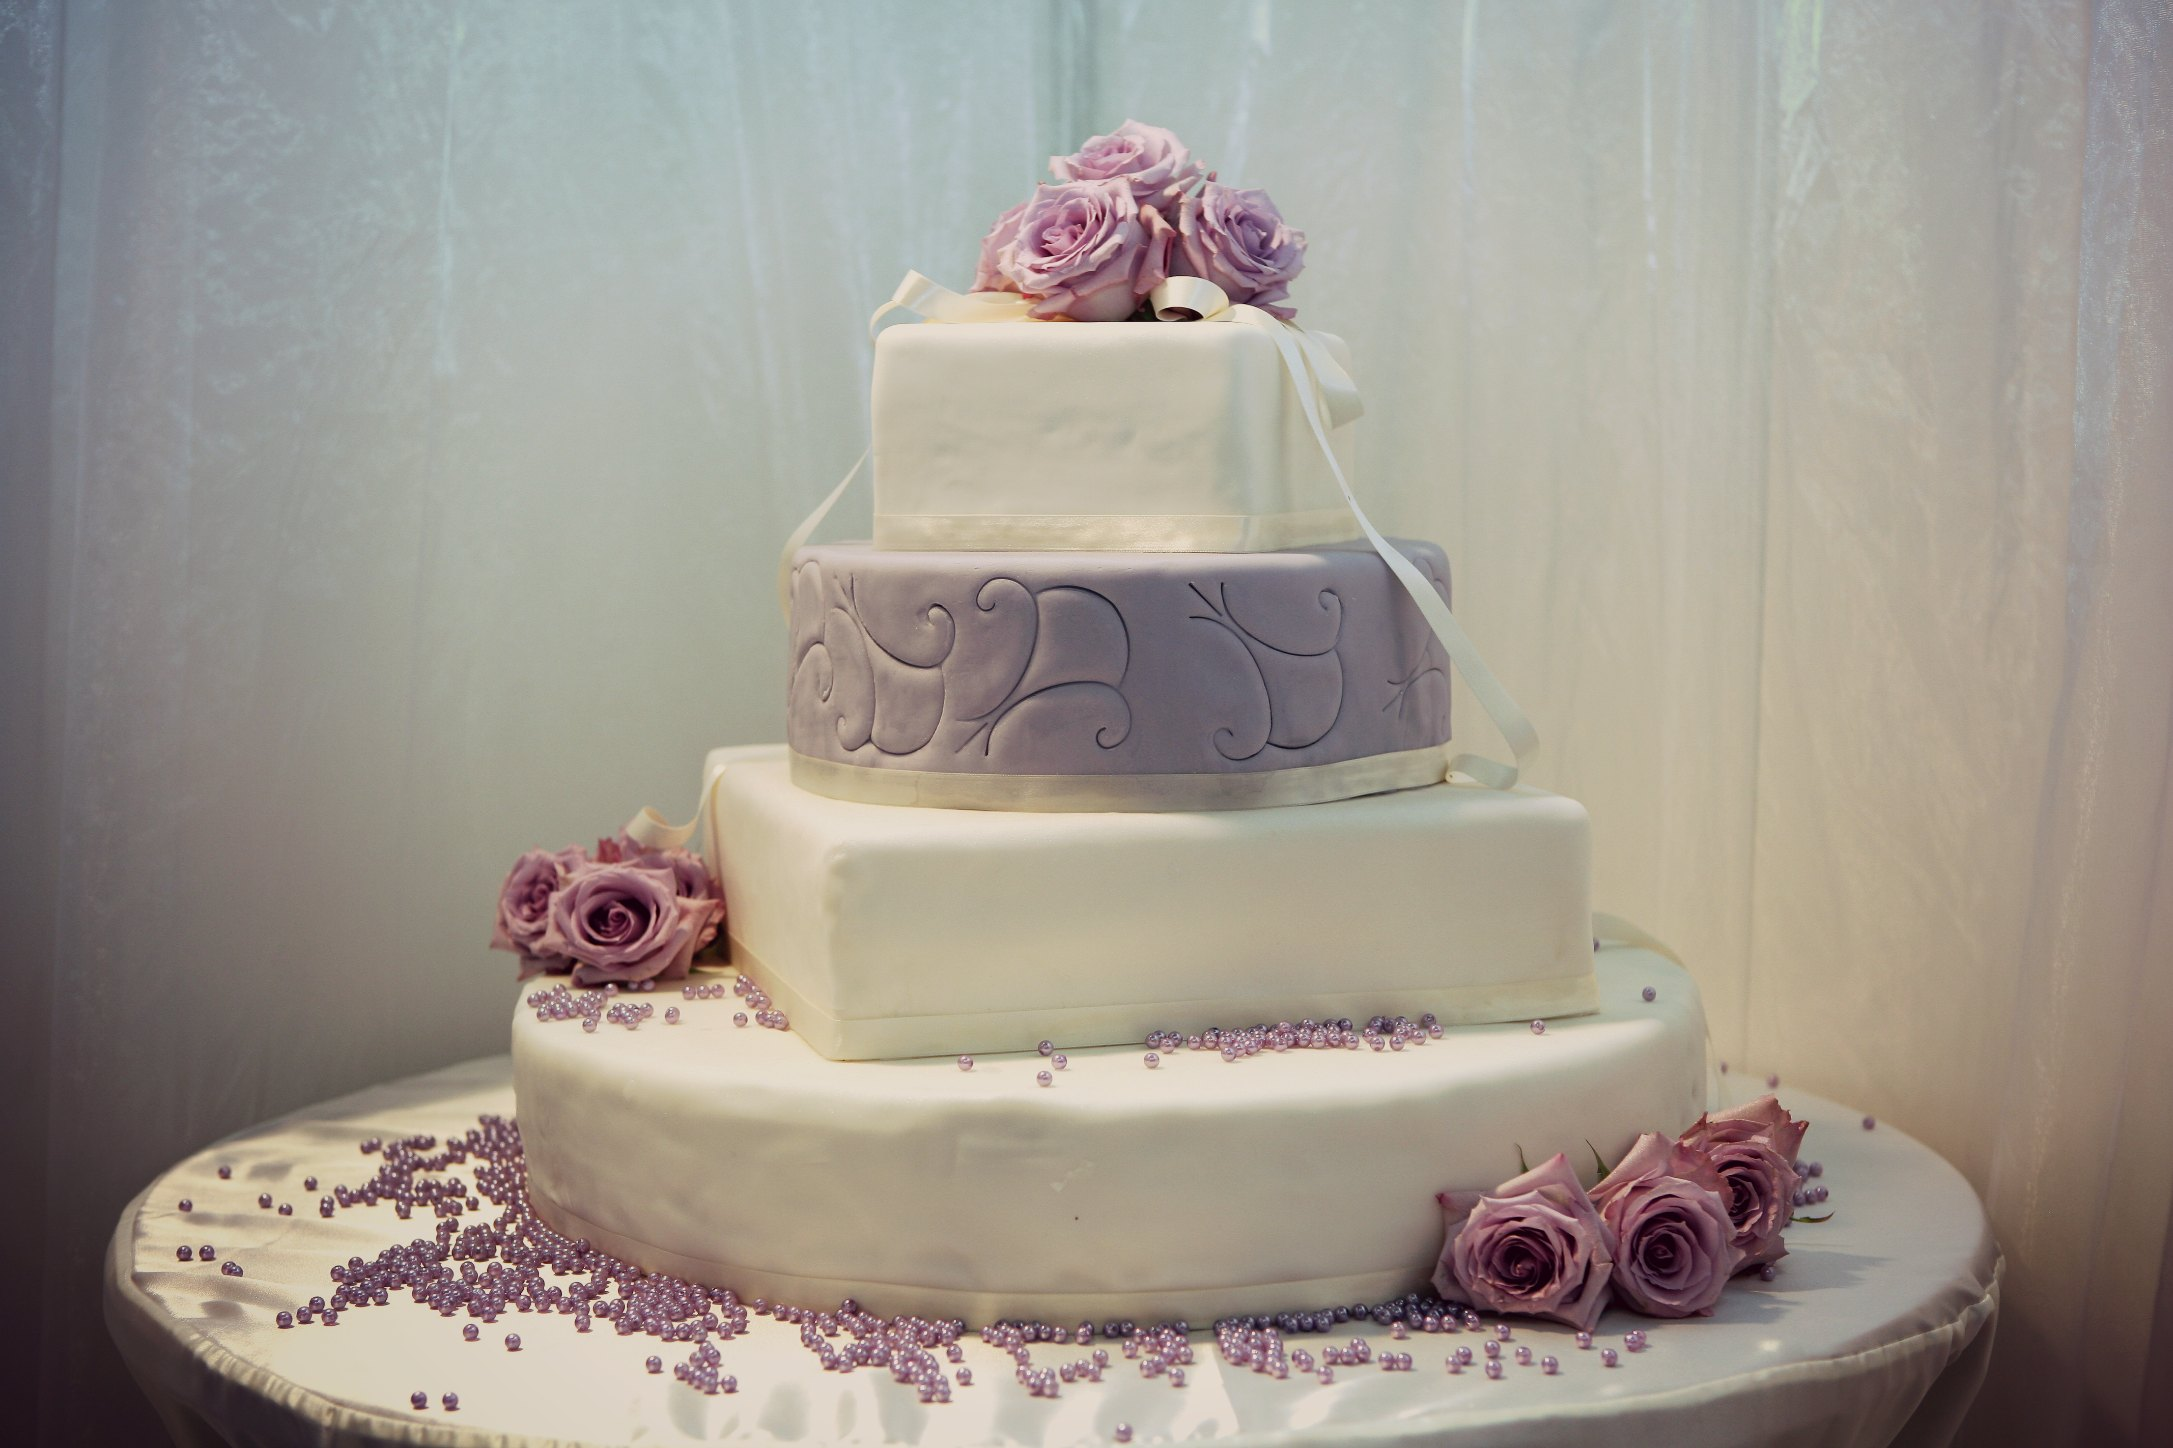 Beautiful wedding cake decorated with roses